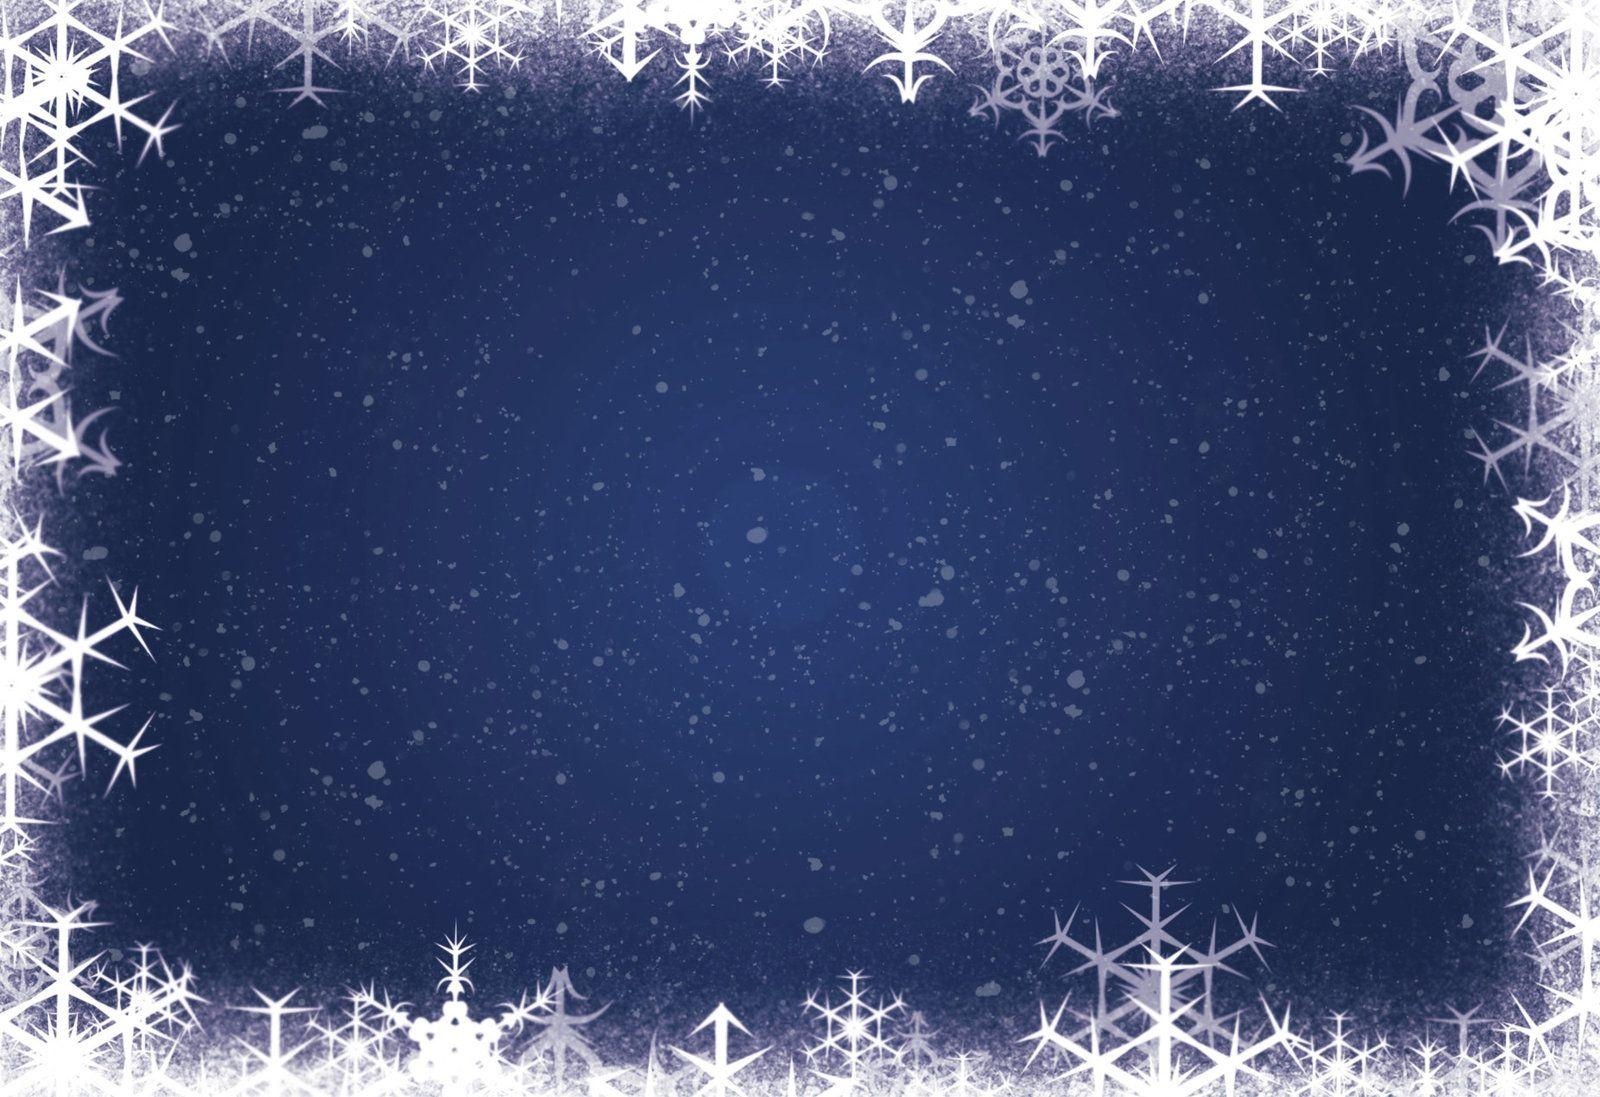 Snowflake Backgrounds - Wallpaper Cave